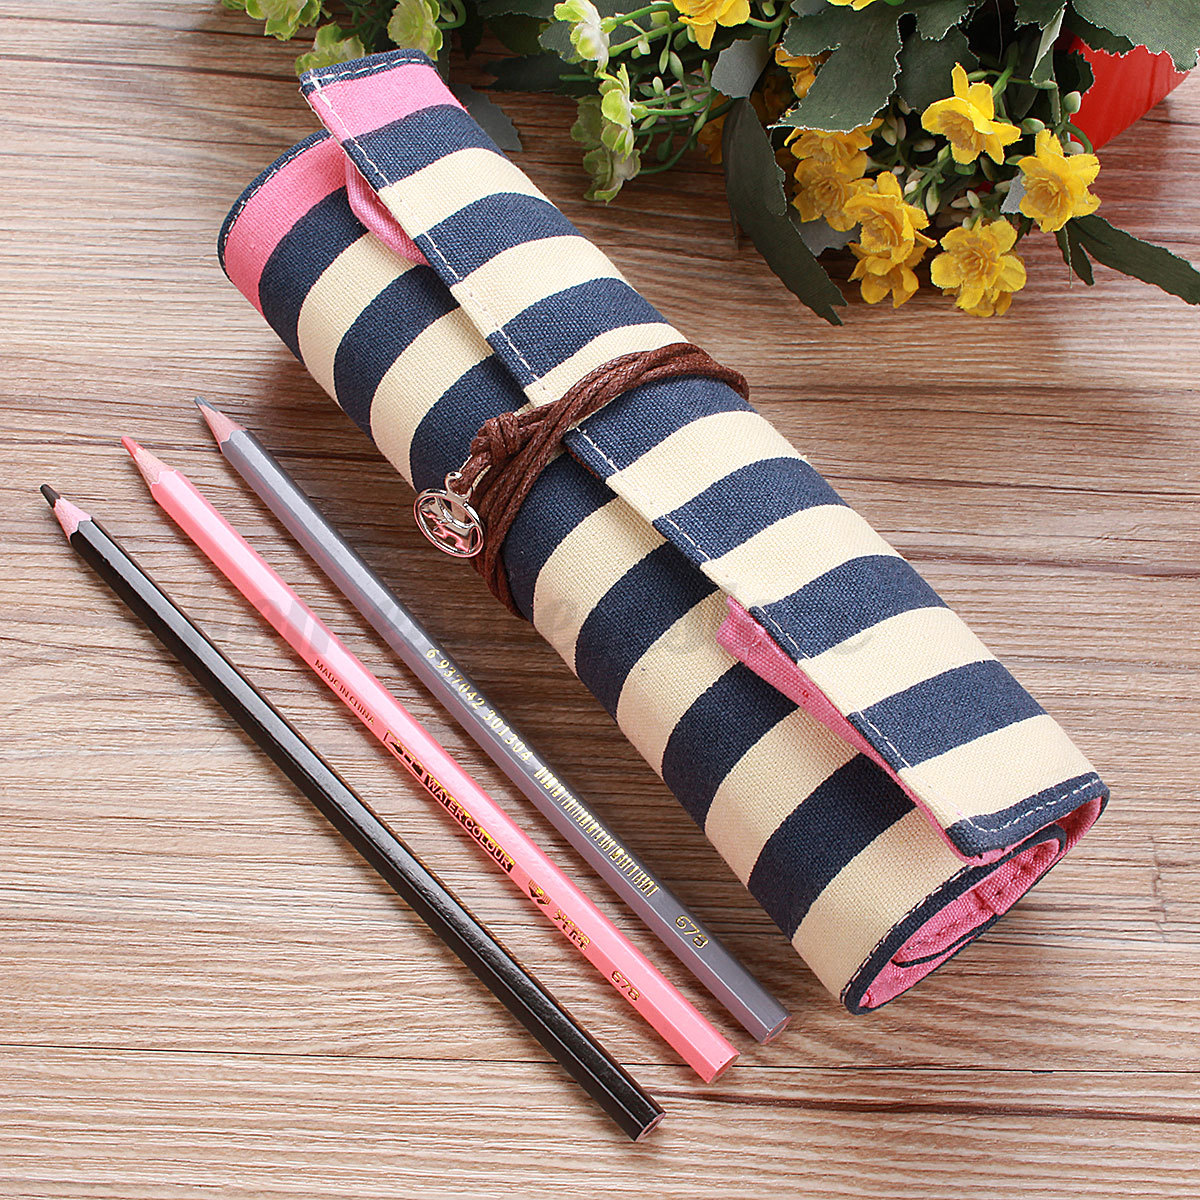 Student Stationery Canvas Roll Up Pencil Pen Case Brush Wrap Cosmetic Bag HOT